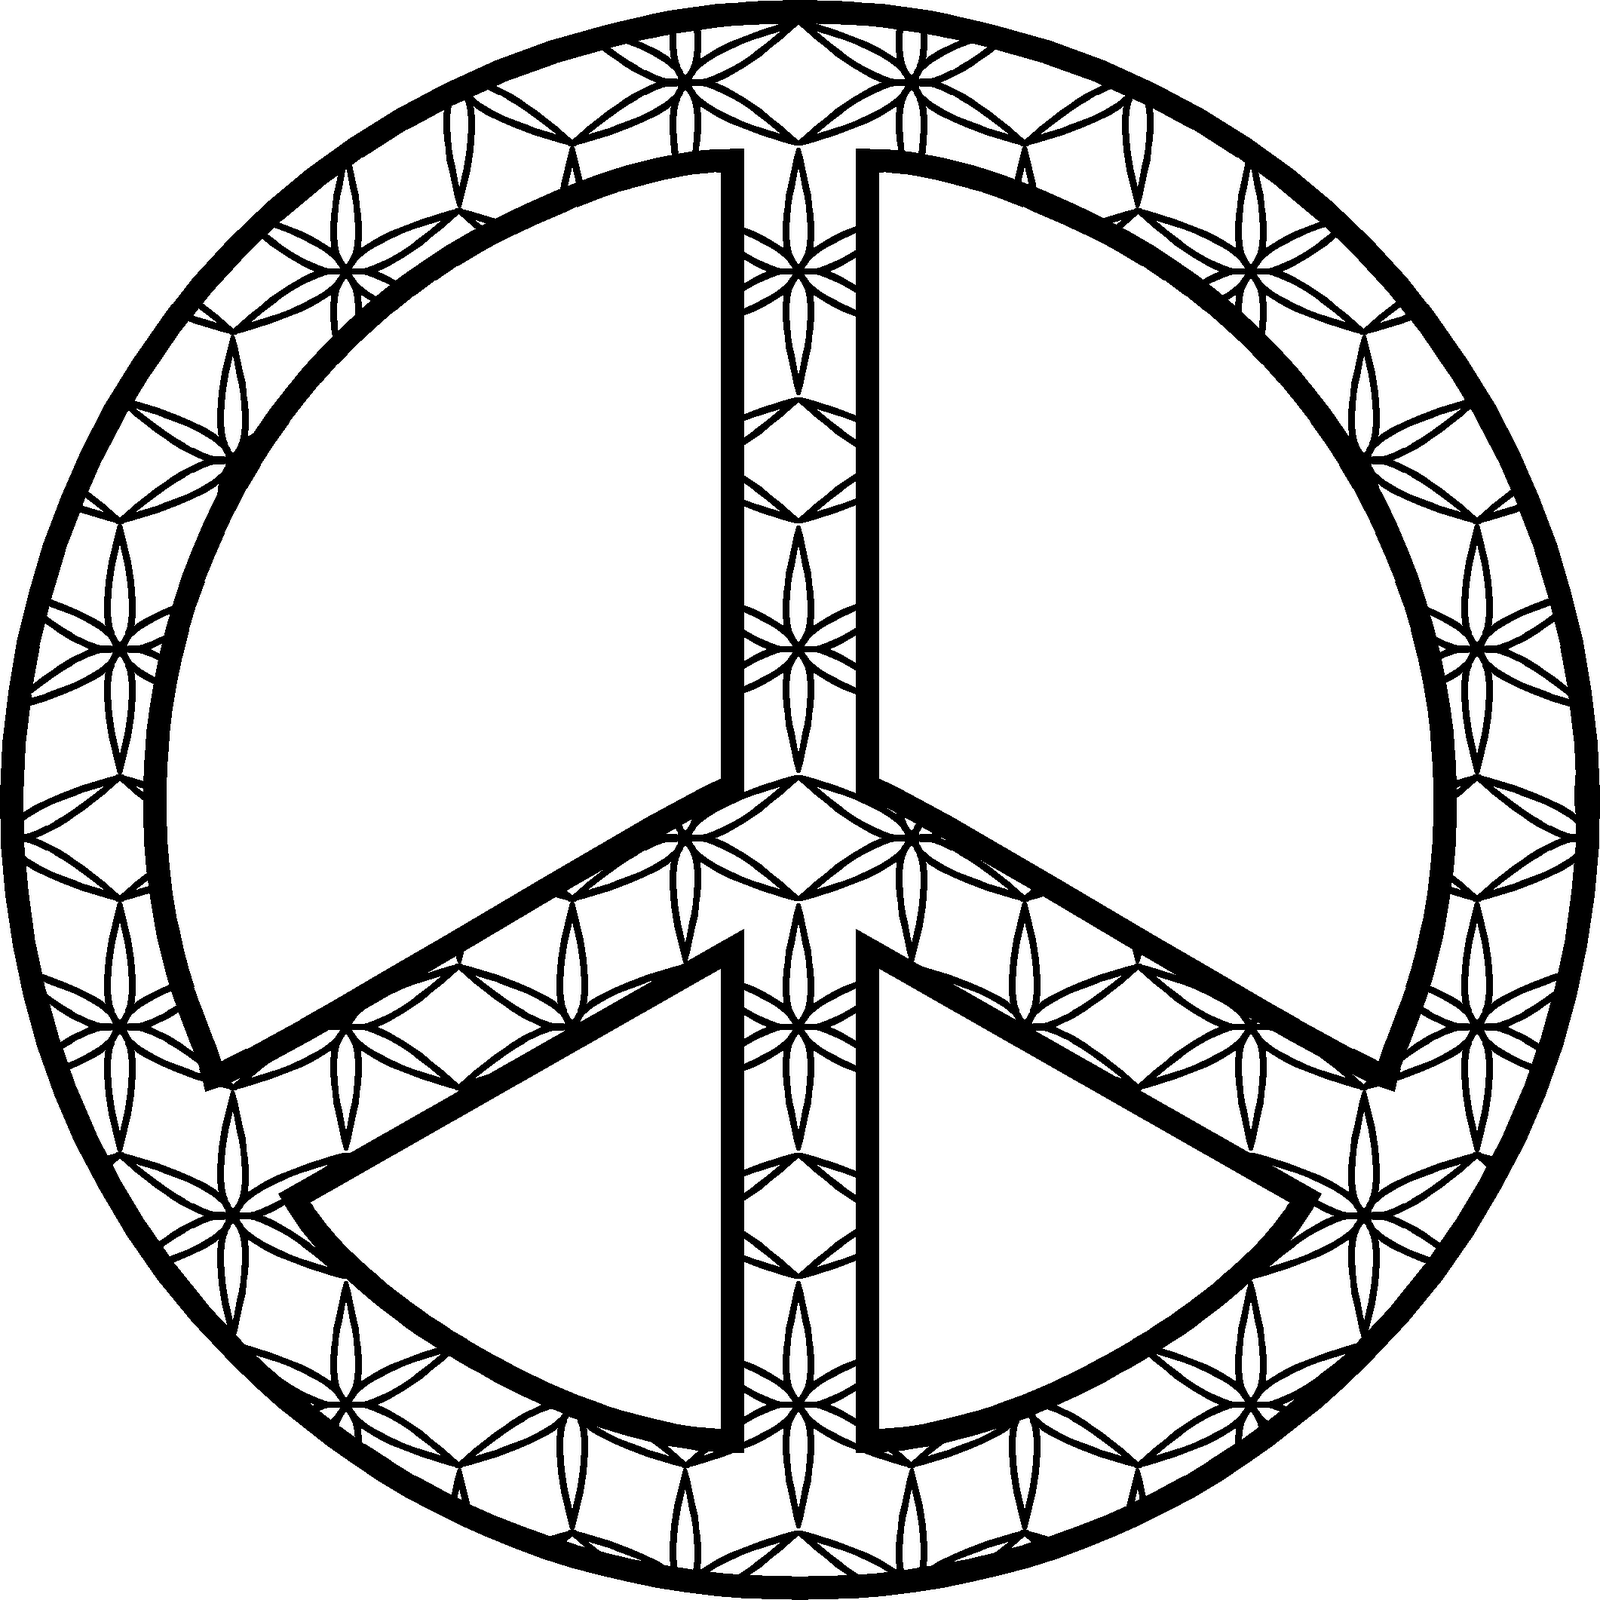 symbol peace sign flower black white line art coloring